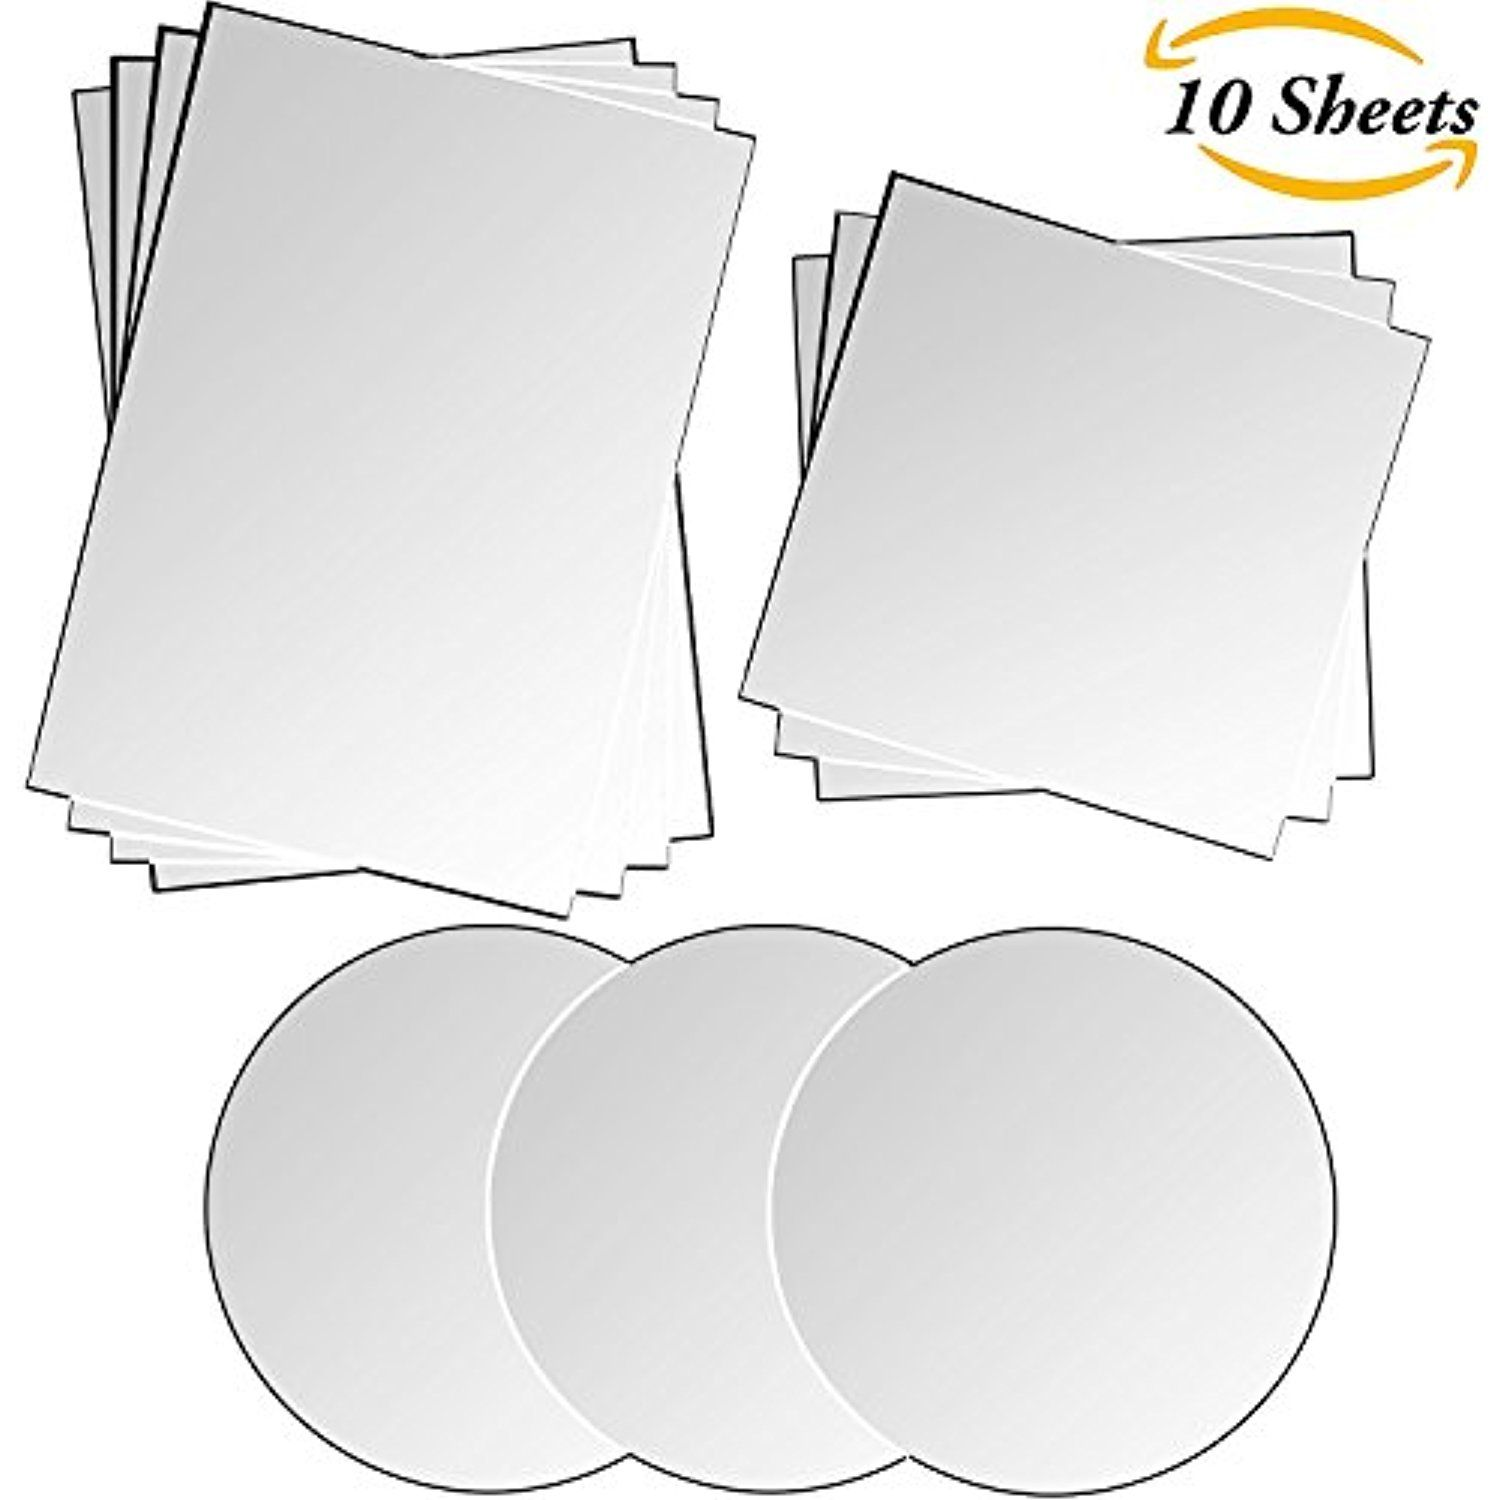 Aneco 10 Sheets Mirror Sheets Self Adhesive Mirror Plastic Tiles Wall Mirror Stickers For Home Decora Framed Mirror Wall Antique Mirror Wall Mirror Design Wall